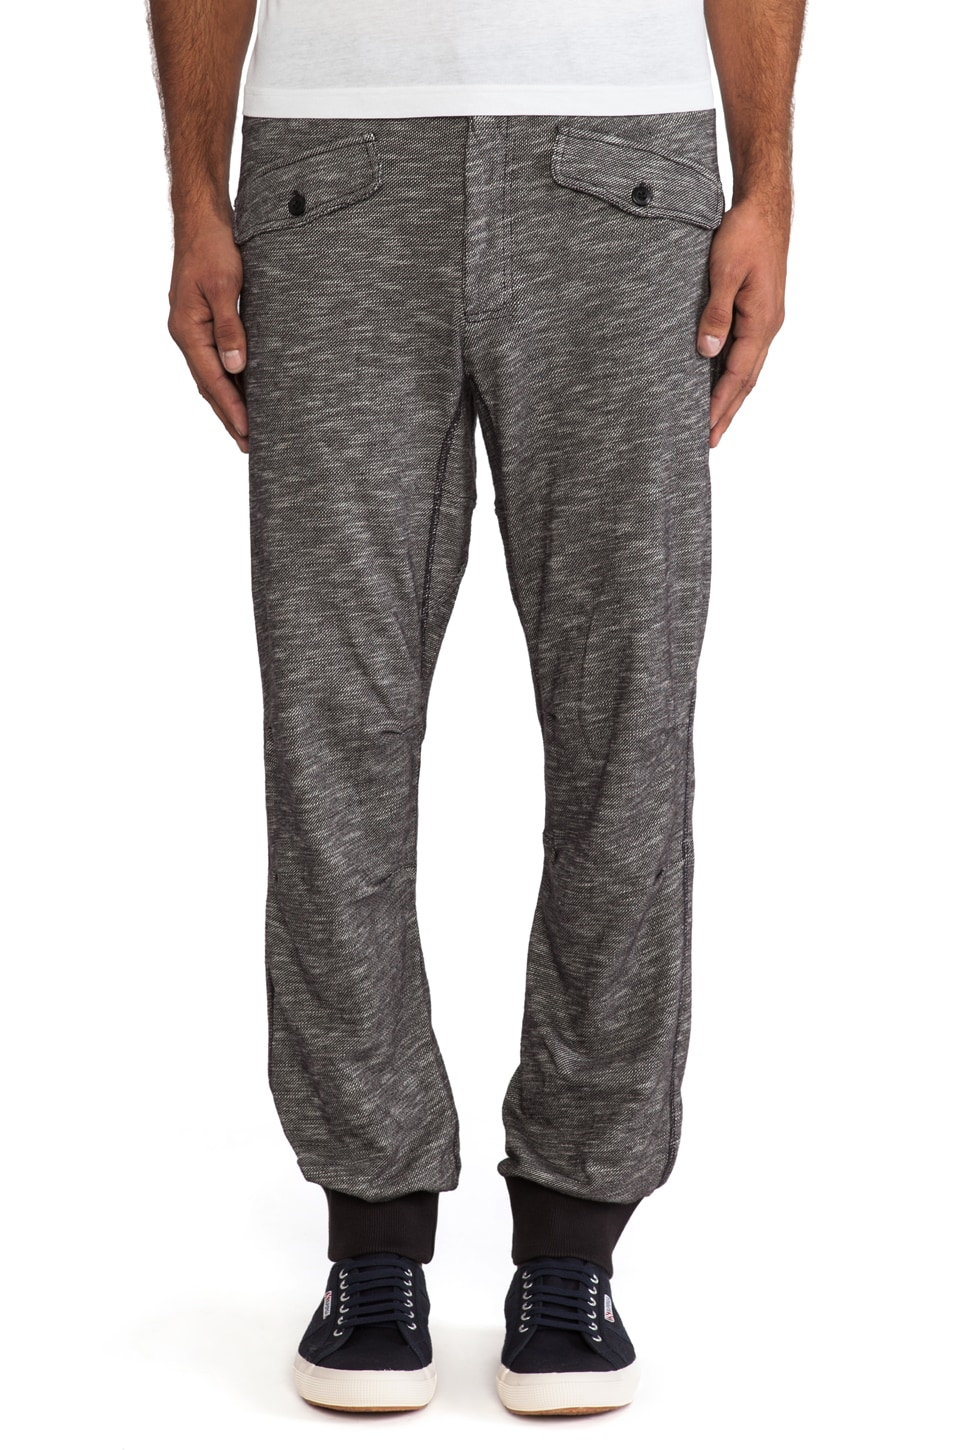 Burkman Bros. Cozy Athletic Pant in Black